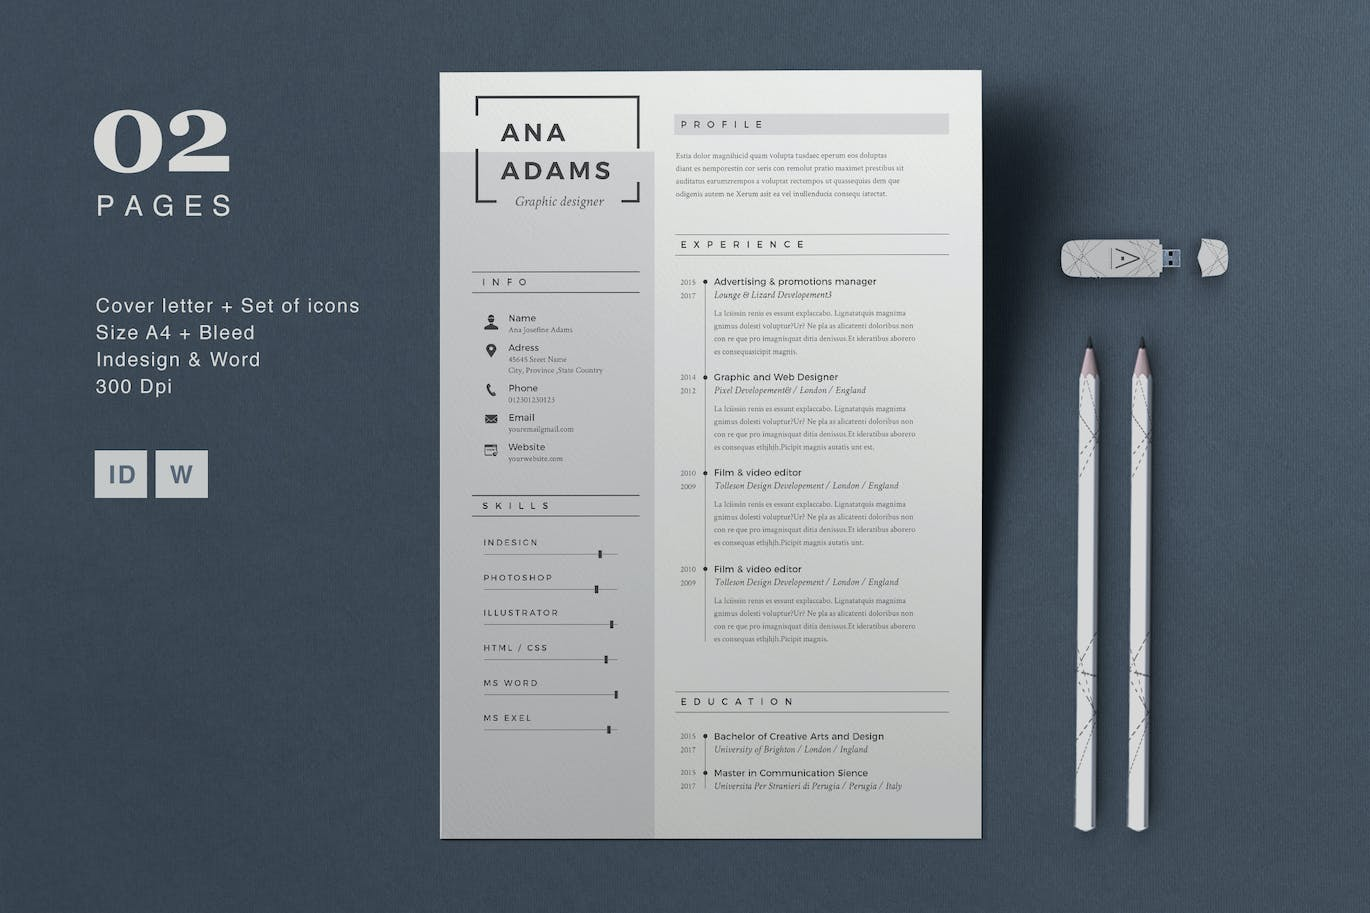 download here resume anna - Creative Resume Templates Free Download